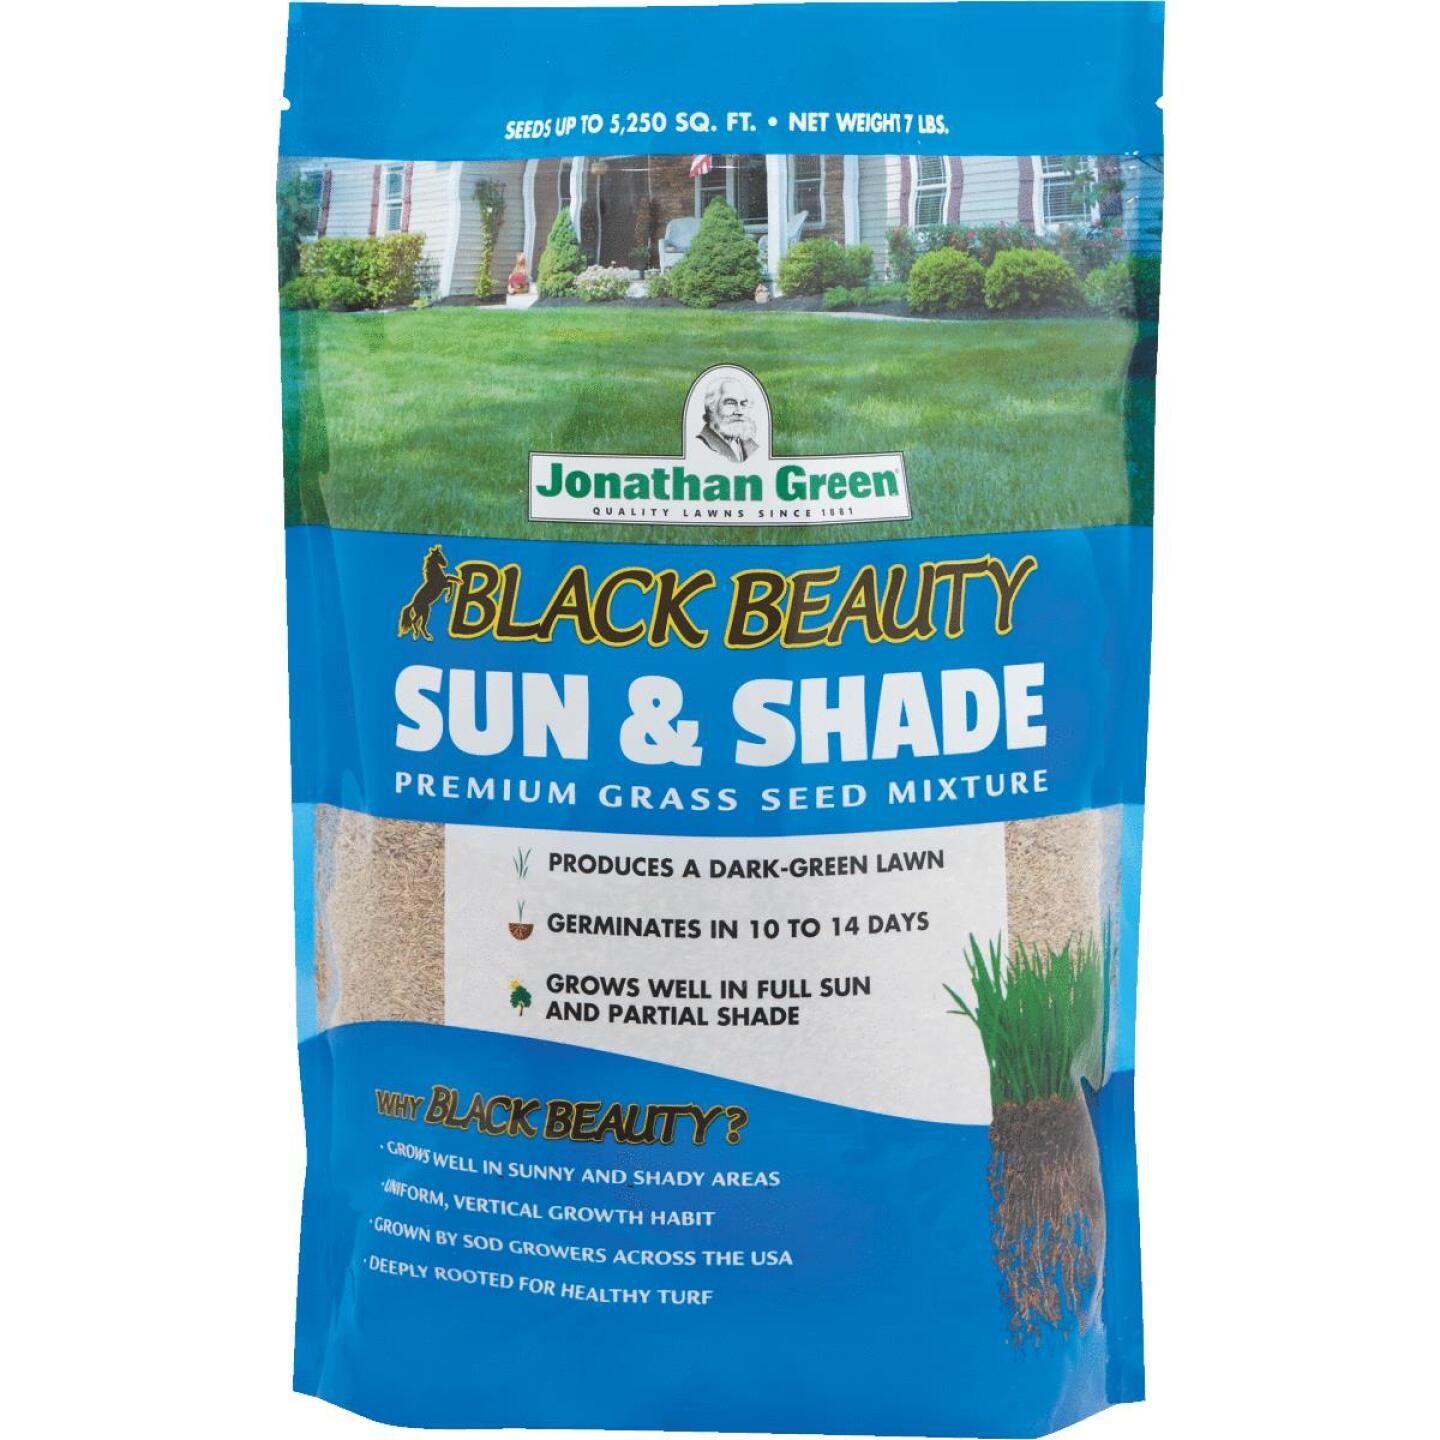 Jonathan Green Black Beauty 7 Lb. 2625 Sq. Ft. Coverage Sun & Shade Grass Seed Image 1